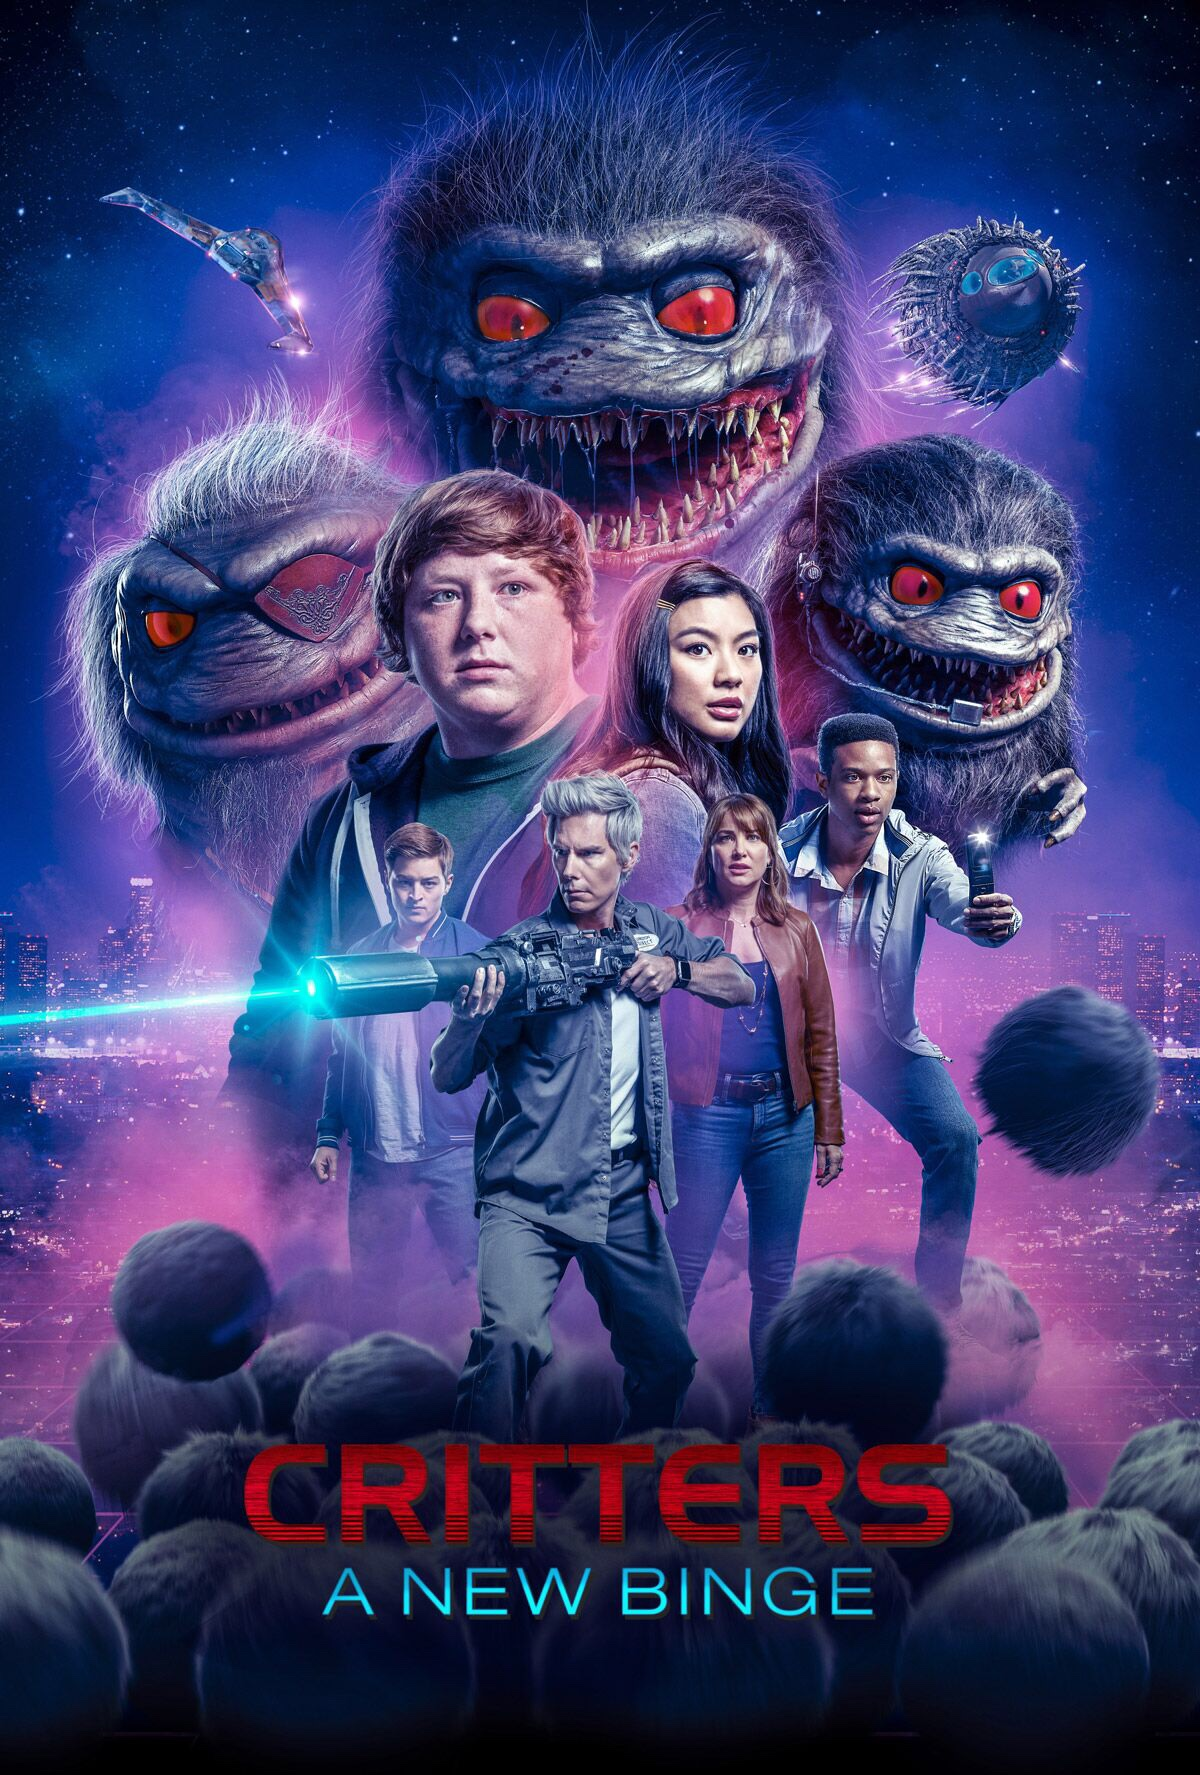 critters a new binge poster